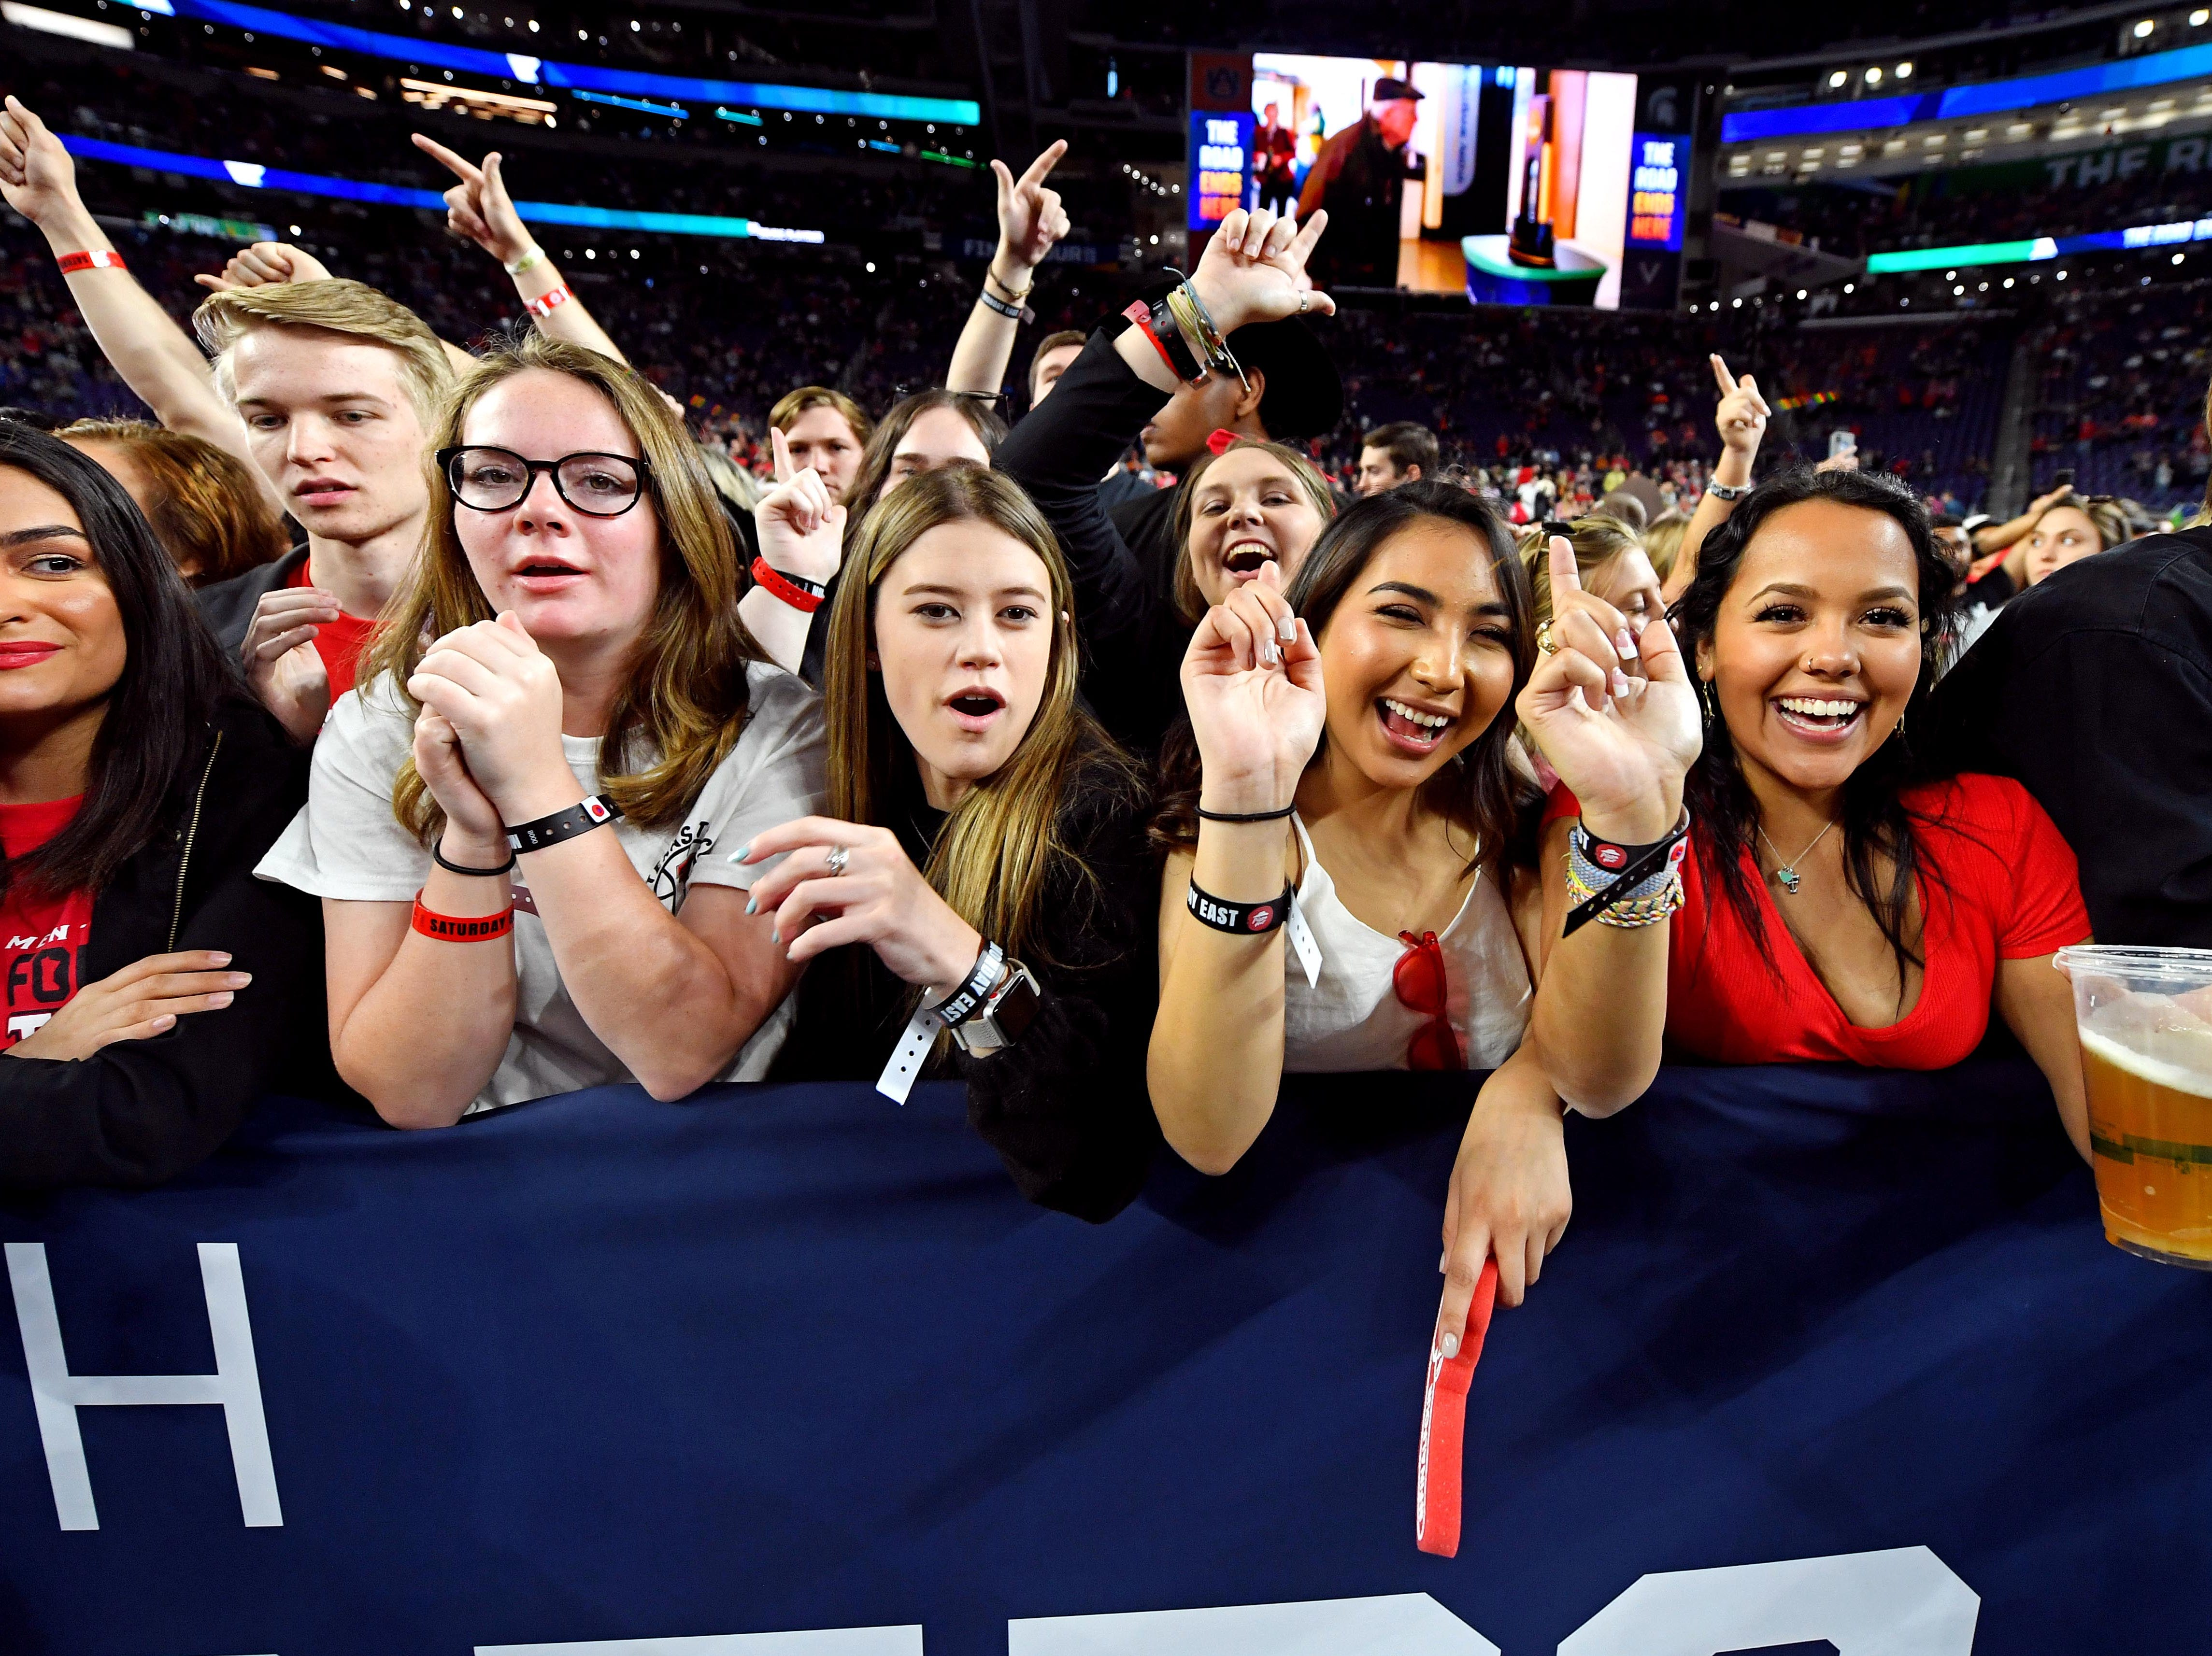 Apr 8, 2019; Minneapolis, MN, USA; Texas Tech Red Raiders fans cheer before the game against the Virginia Cavaliers in the championship game of the 2019 men's Final Four at US Bank Stadium. Mandatory Credit: Bob Donnan-USA TODAY Sports